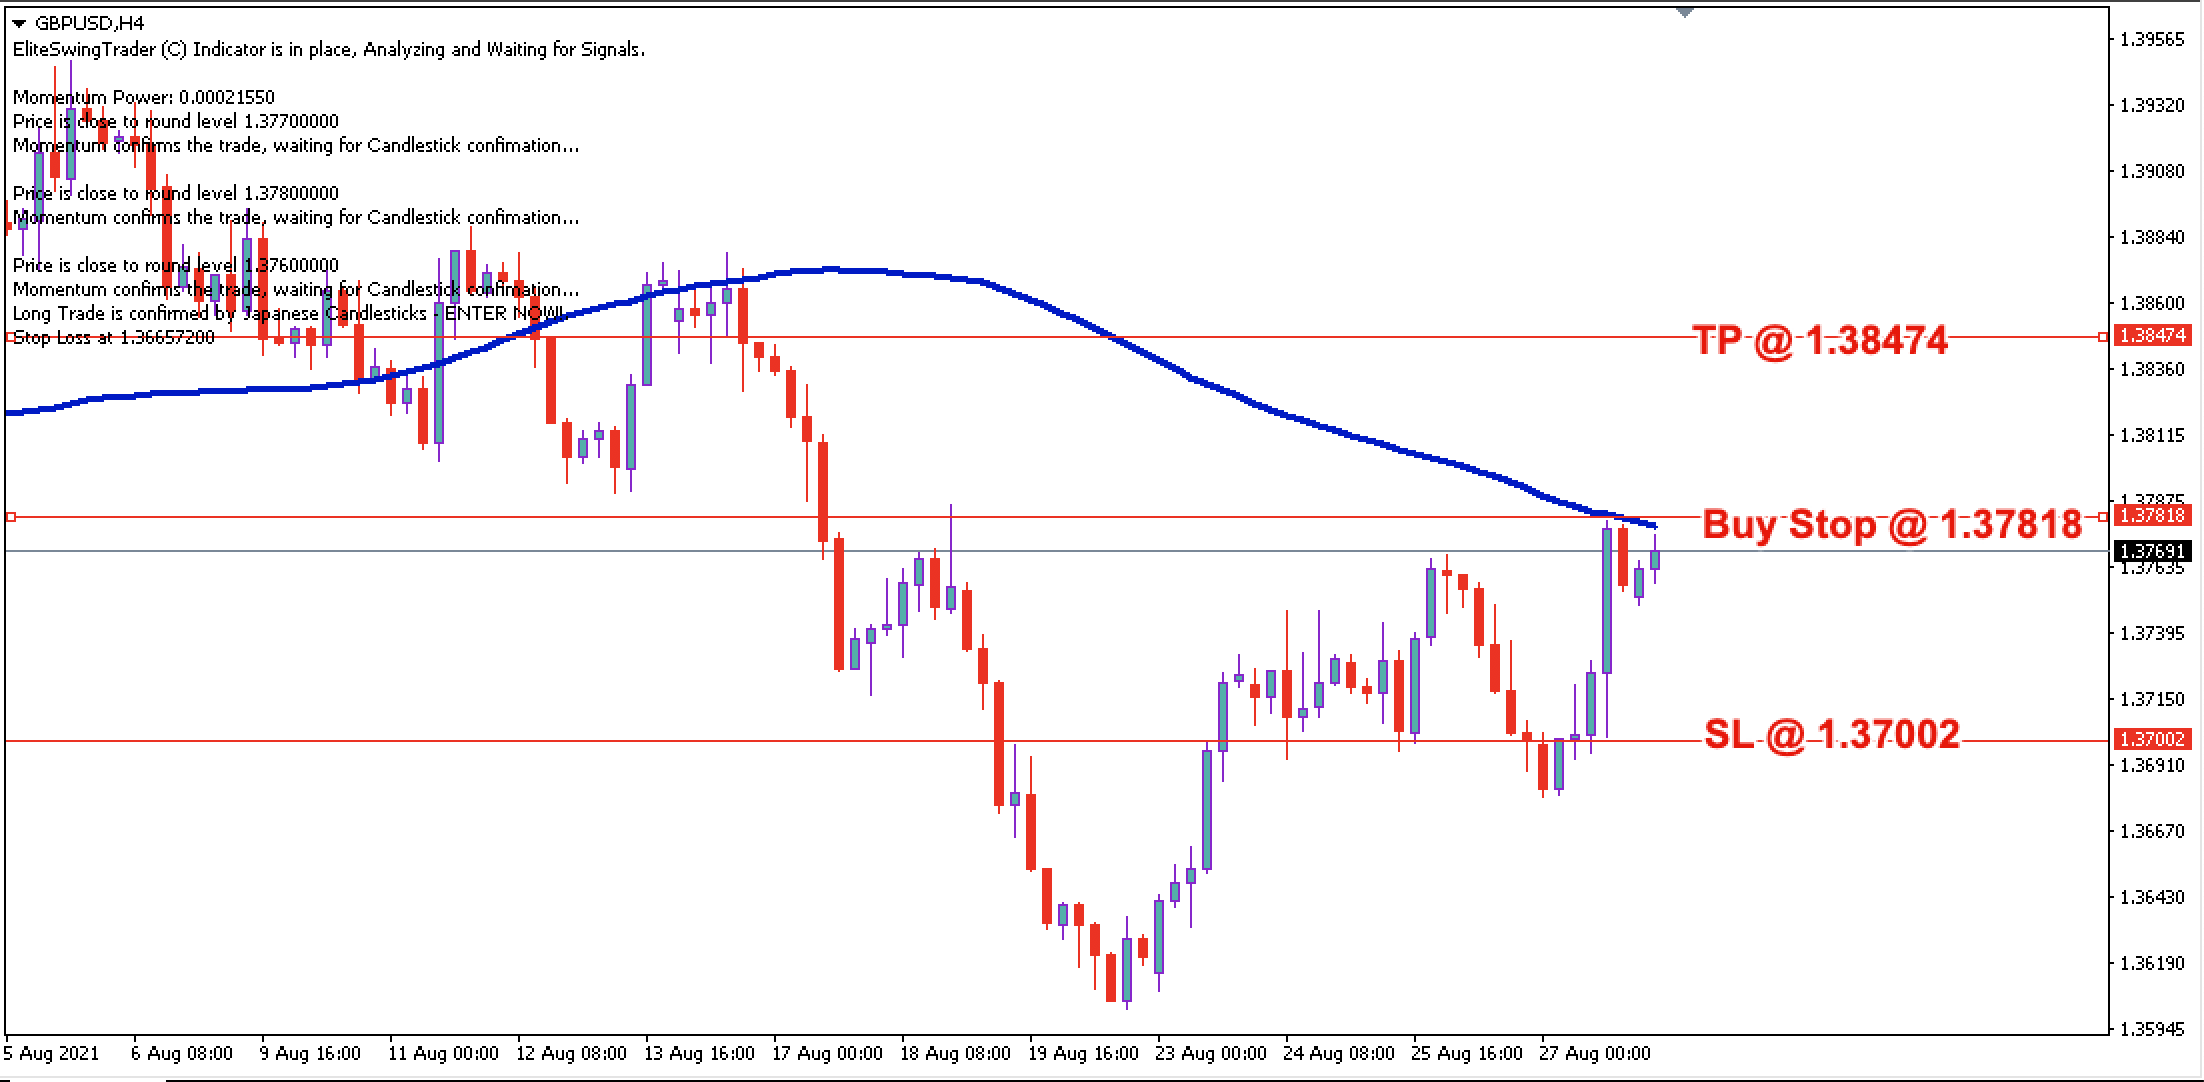 GBP/USD Daily Price Forecast – 30th August 2021